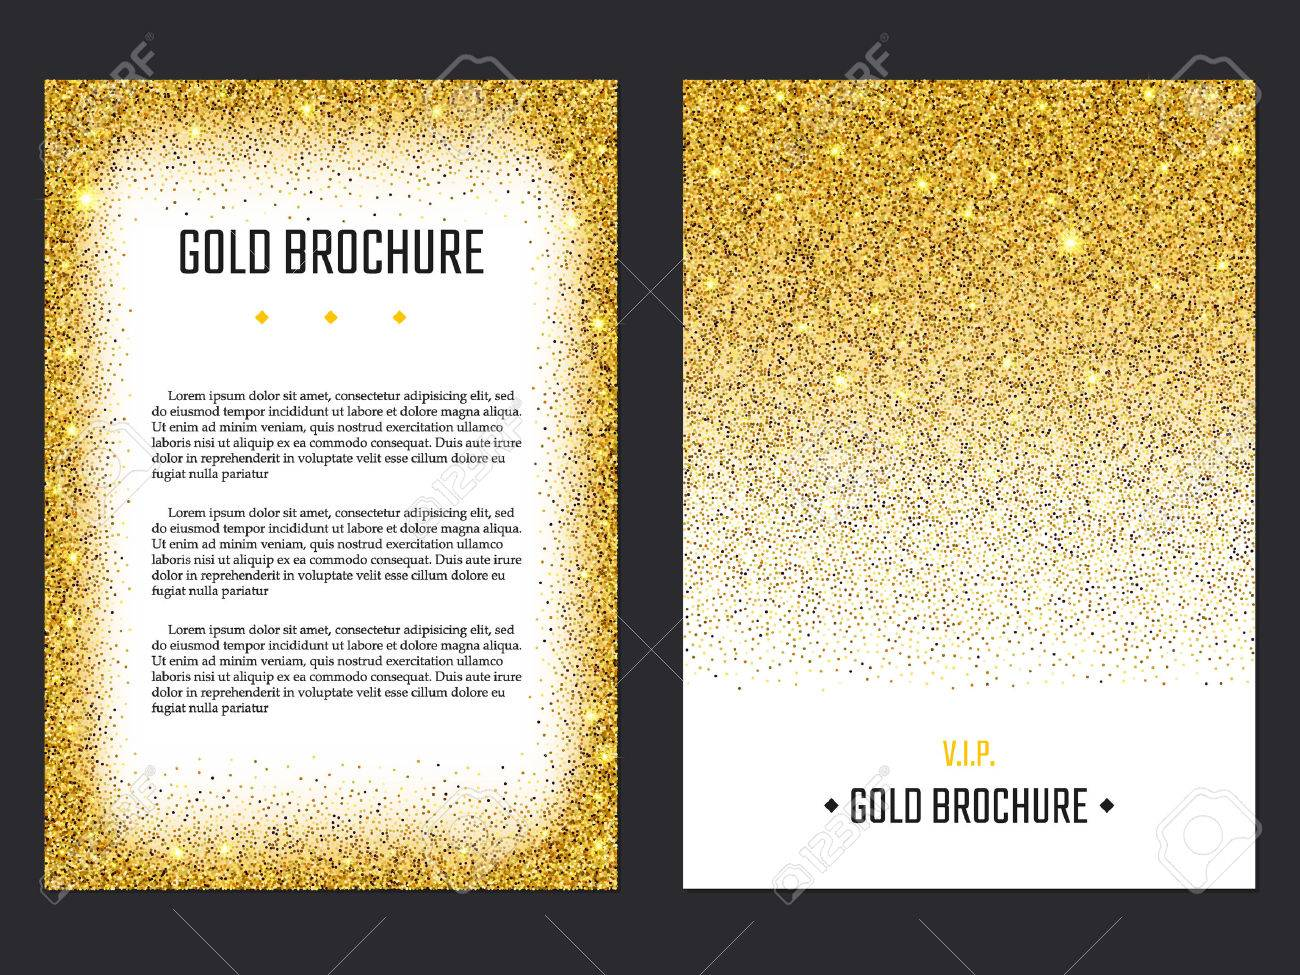 vector illustration of golden brochure for design website